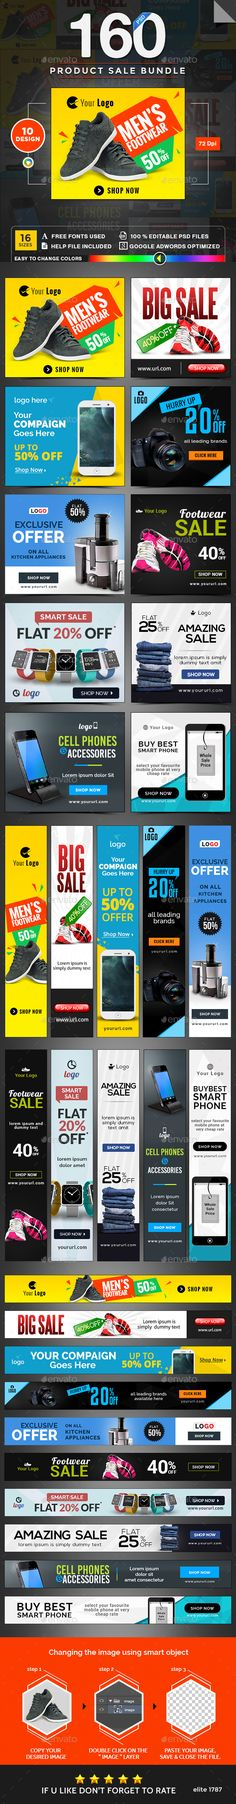 Product Sale Banners Design Template Bundle 10 Sets - 160 Banners - Banners & Ads Web Element Template PSD. Download here: https://graphicriver.net/item/product-sale-banners-bundle-10-sets-160-banners/17728393?s_rank=22&ref=yinkira